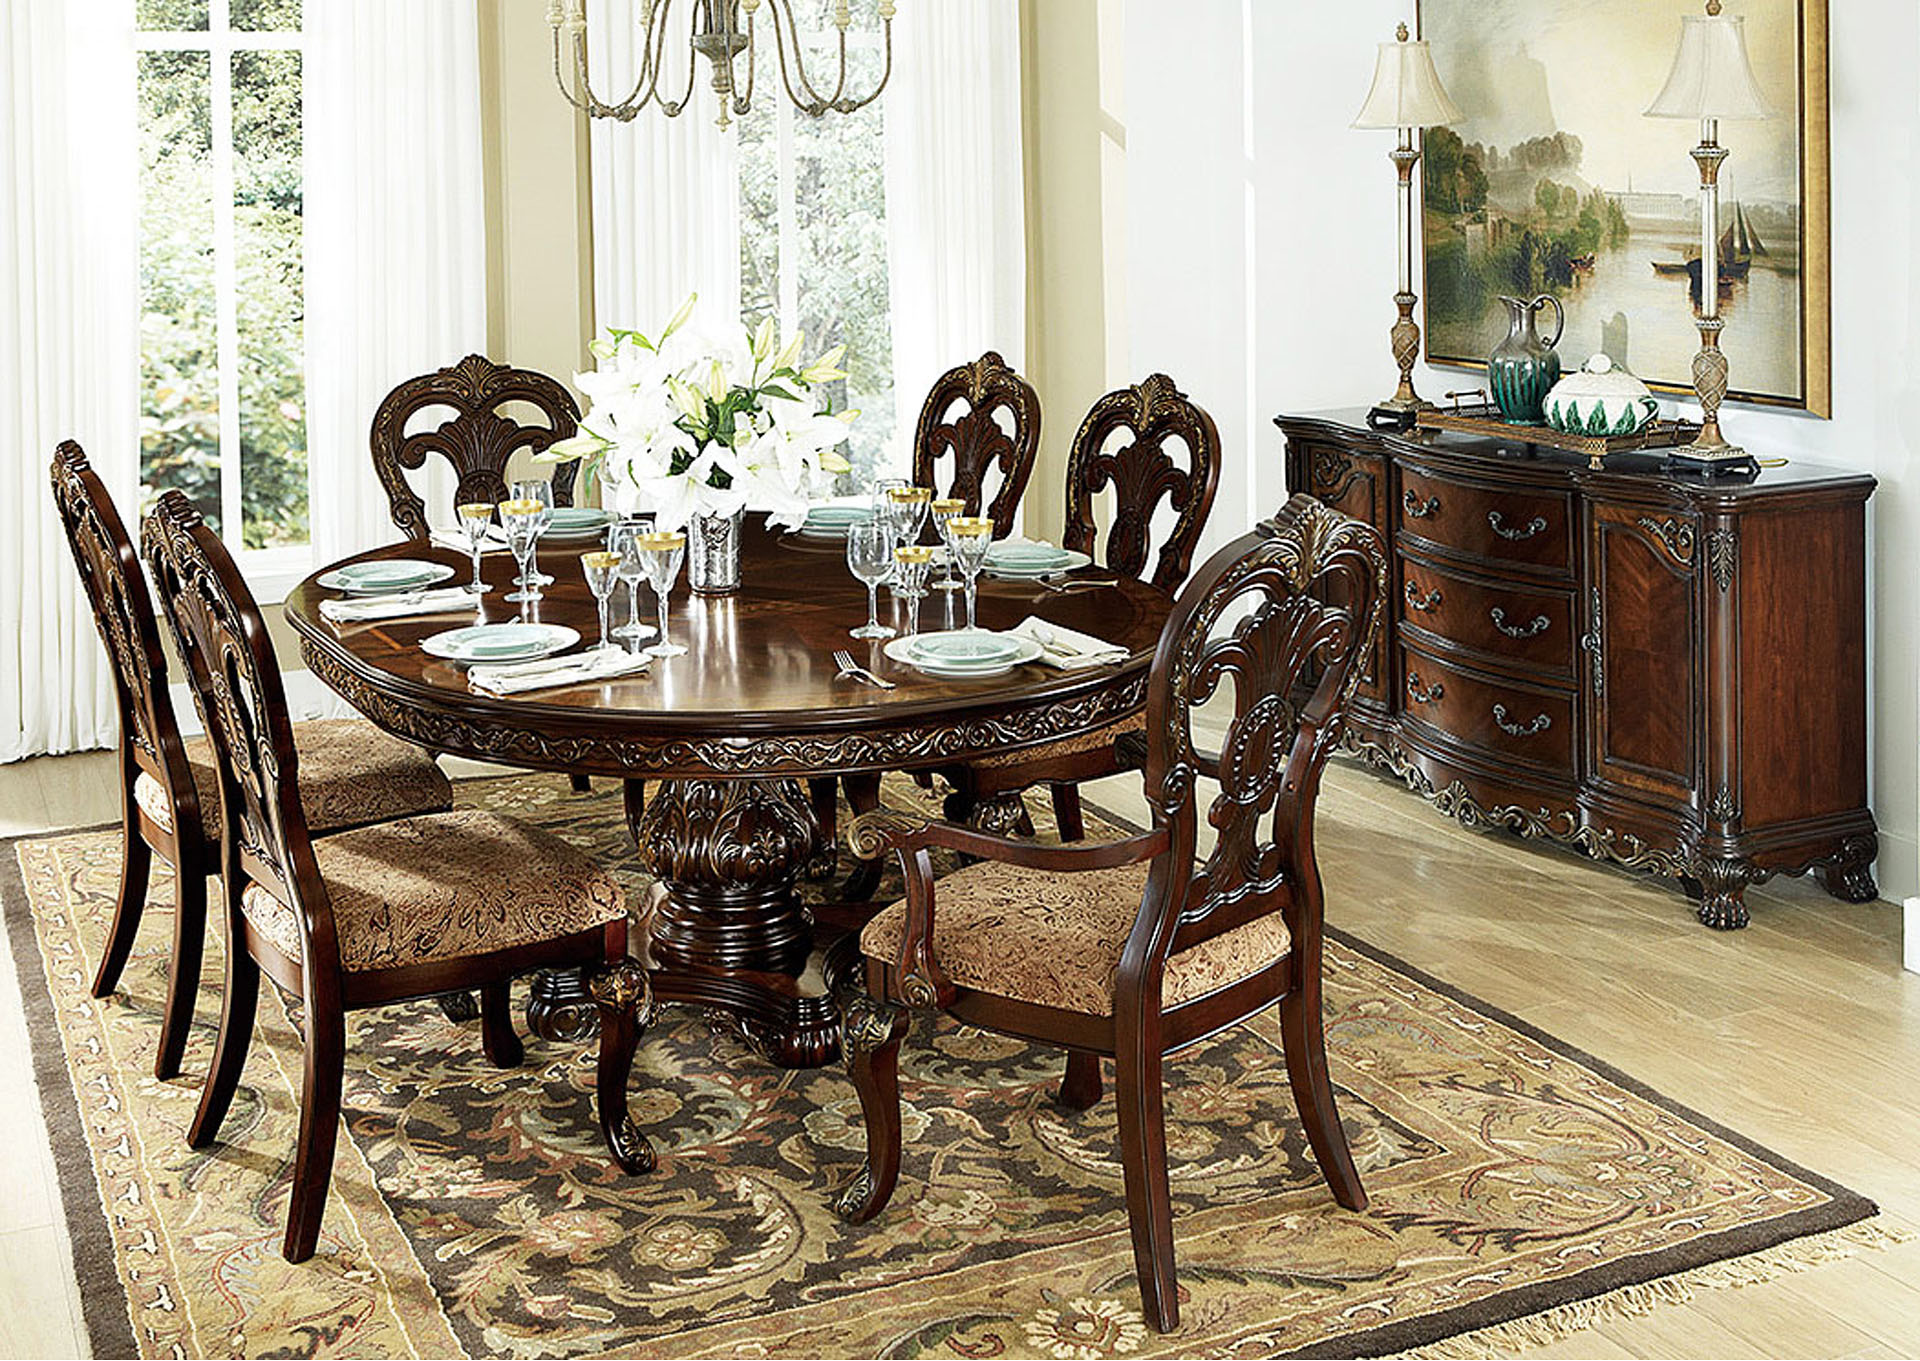 Central Furniture Mart Deryn Park Oval Dining Table Set W Side Chairs - Oval dining table for 4